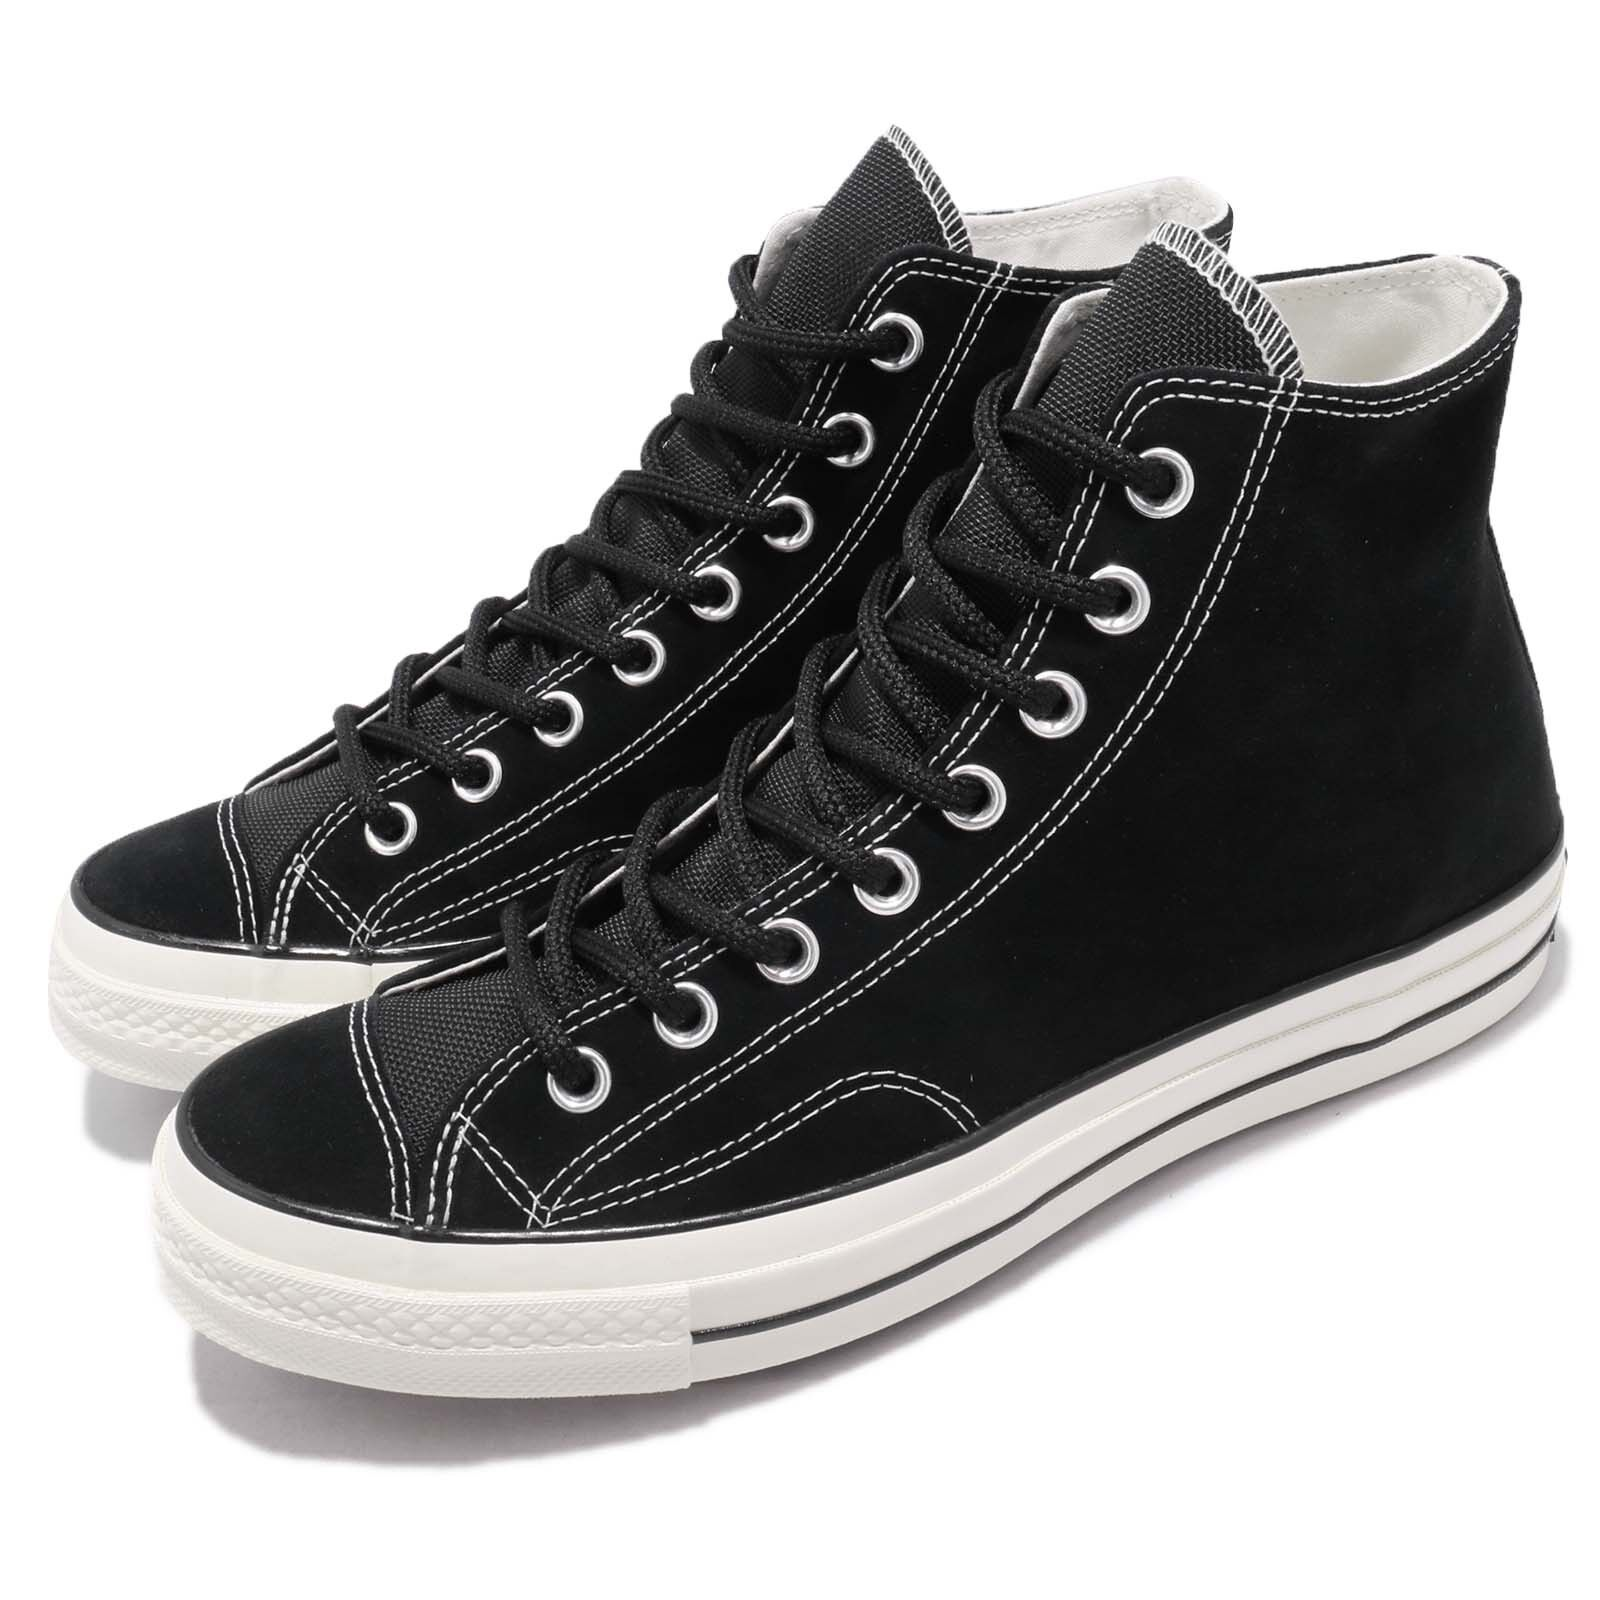 Converse First String Chuck Taylor All Star 70 70 Star 1970 High Top Uomo Donna Pick 1 b49abc